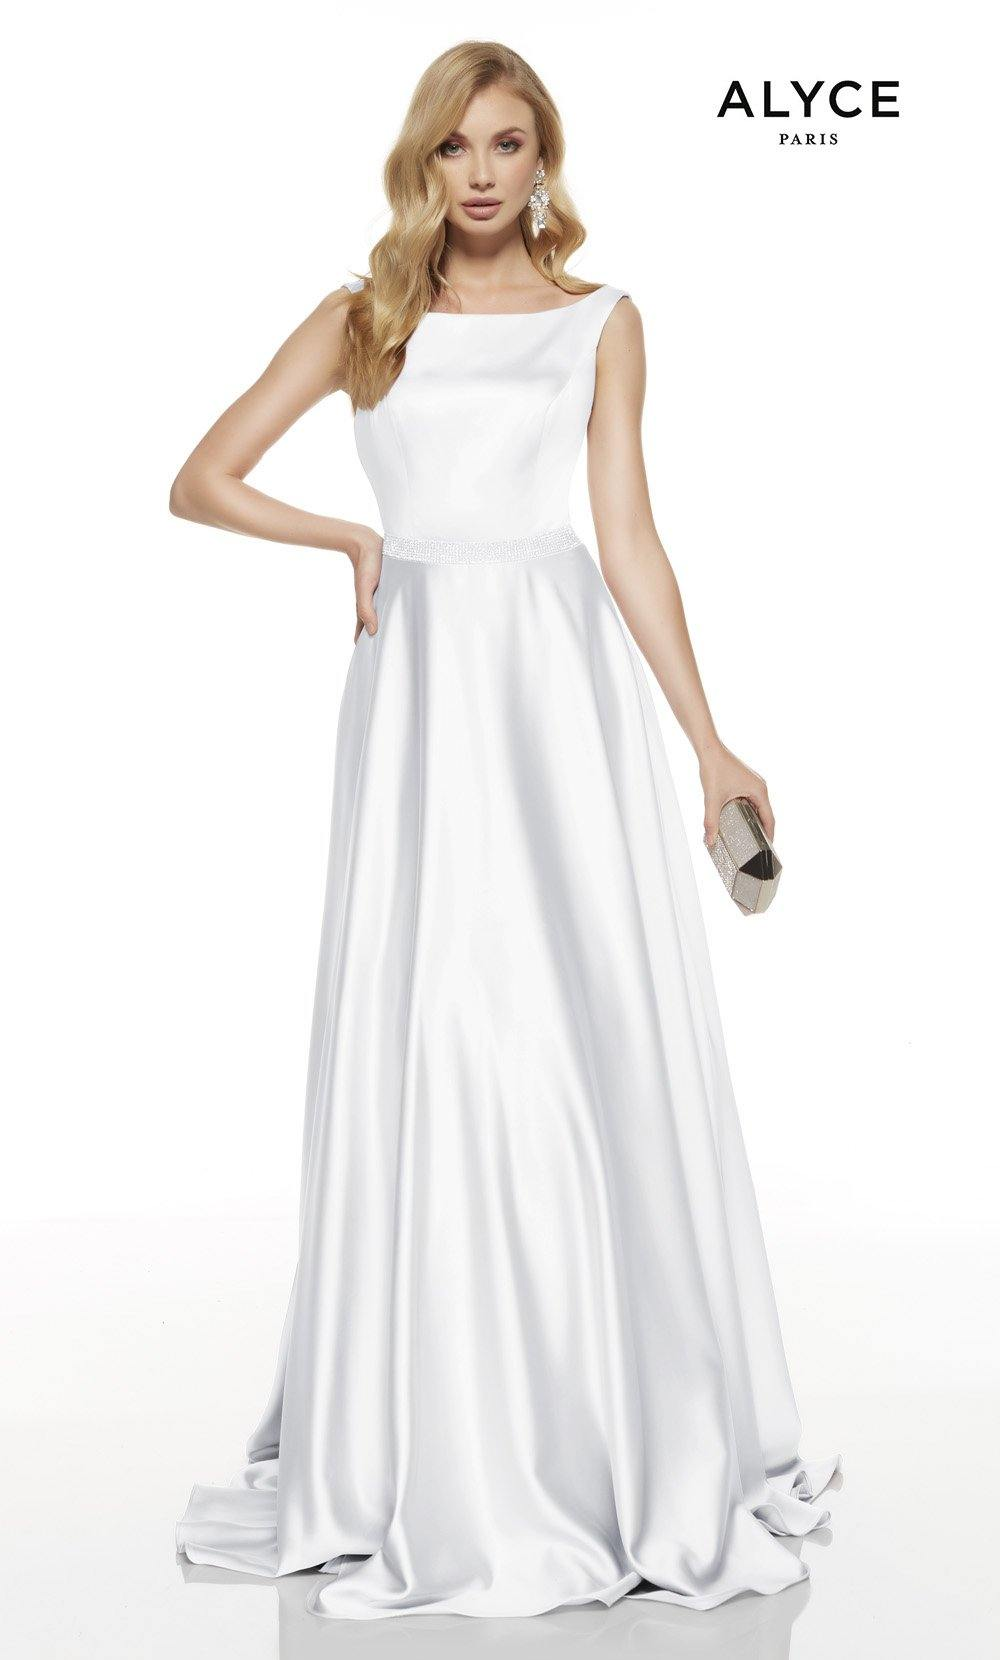 Diamond White formal dress with a bateau neckline